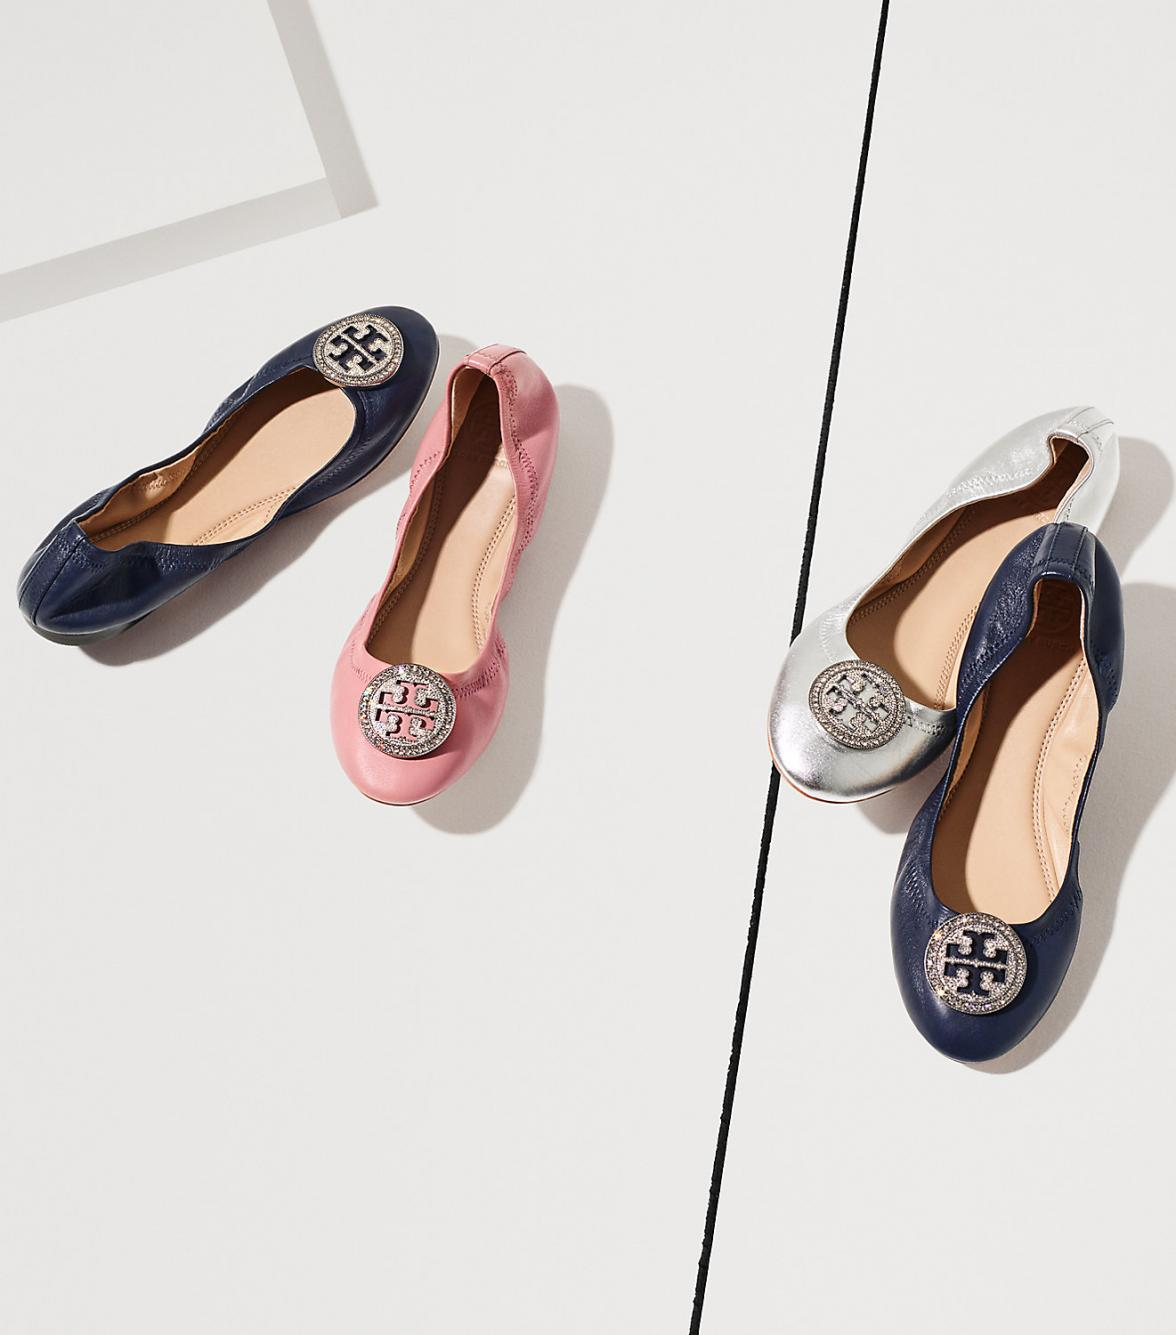 Tory Burch Ballet Flats In Every Color